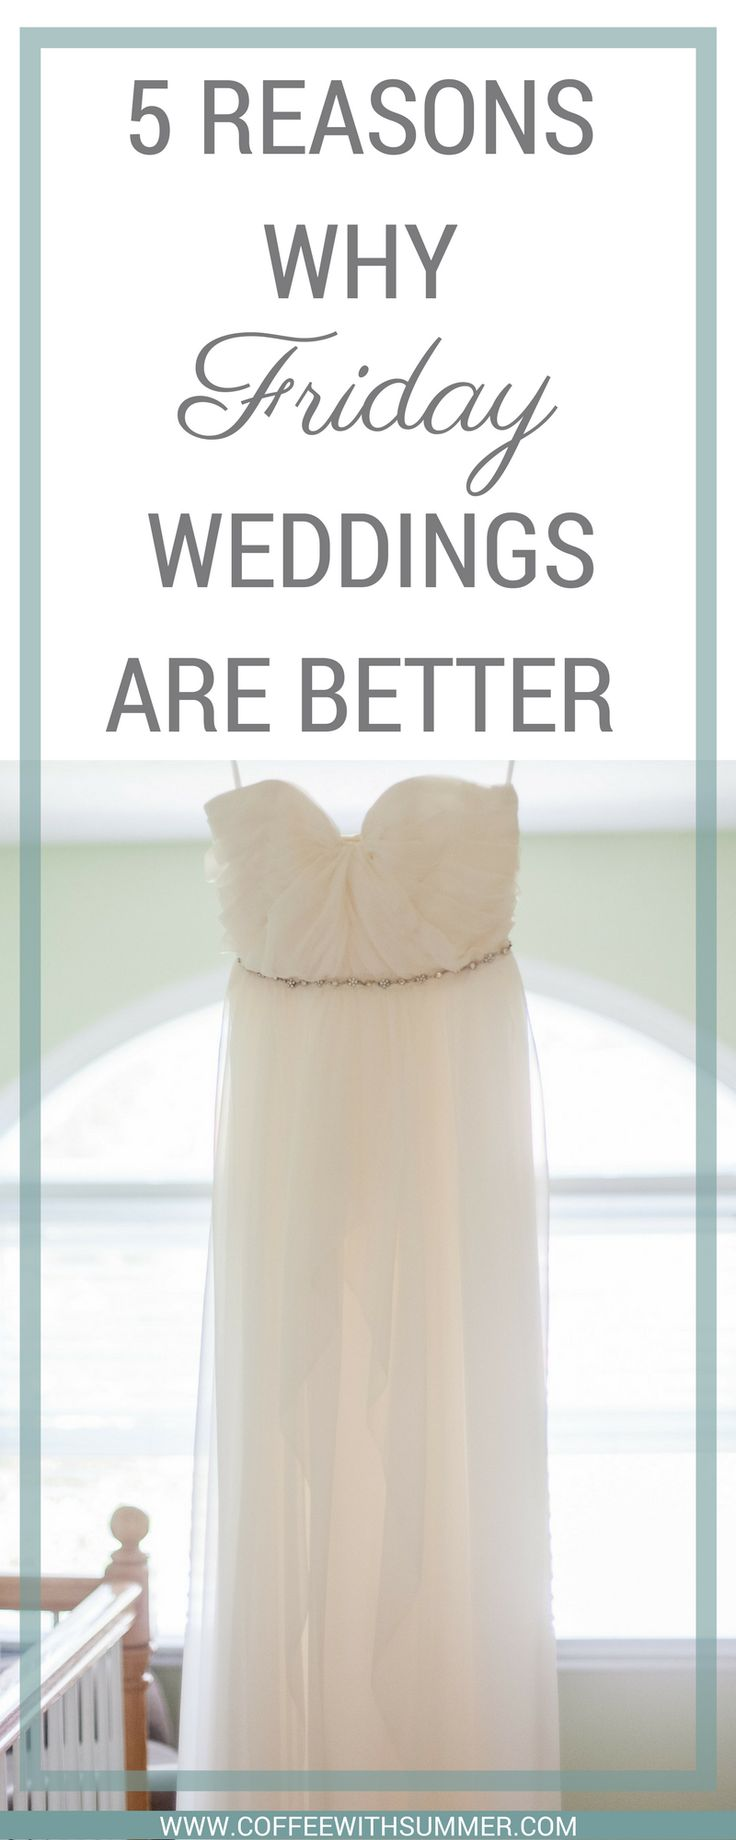 Trying to decide what day to have your wedding on? We chose to have a FRIDAY wedding and we are so glad we did. Here are 5 reasons why Friday weddings are better.